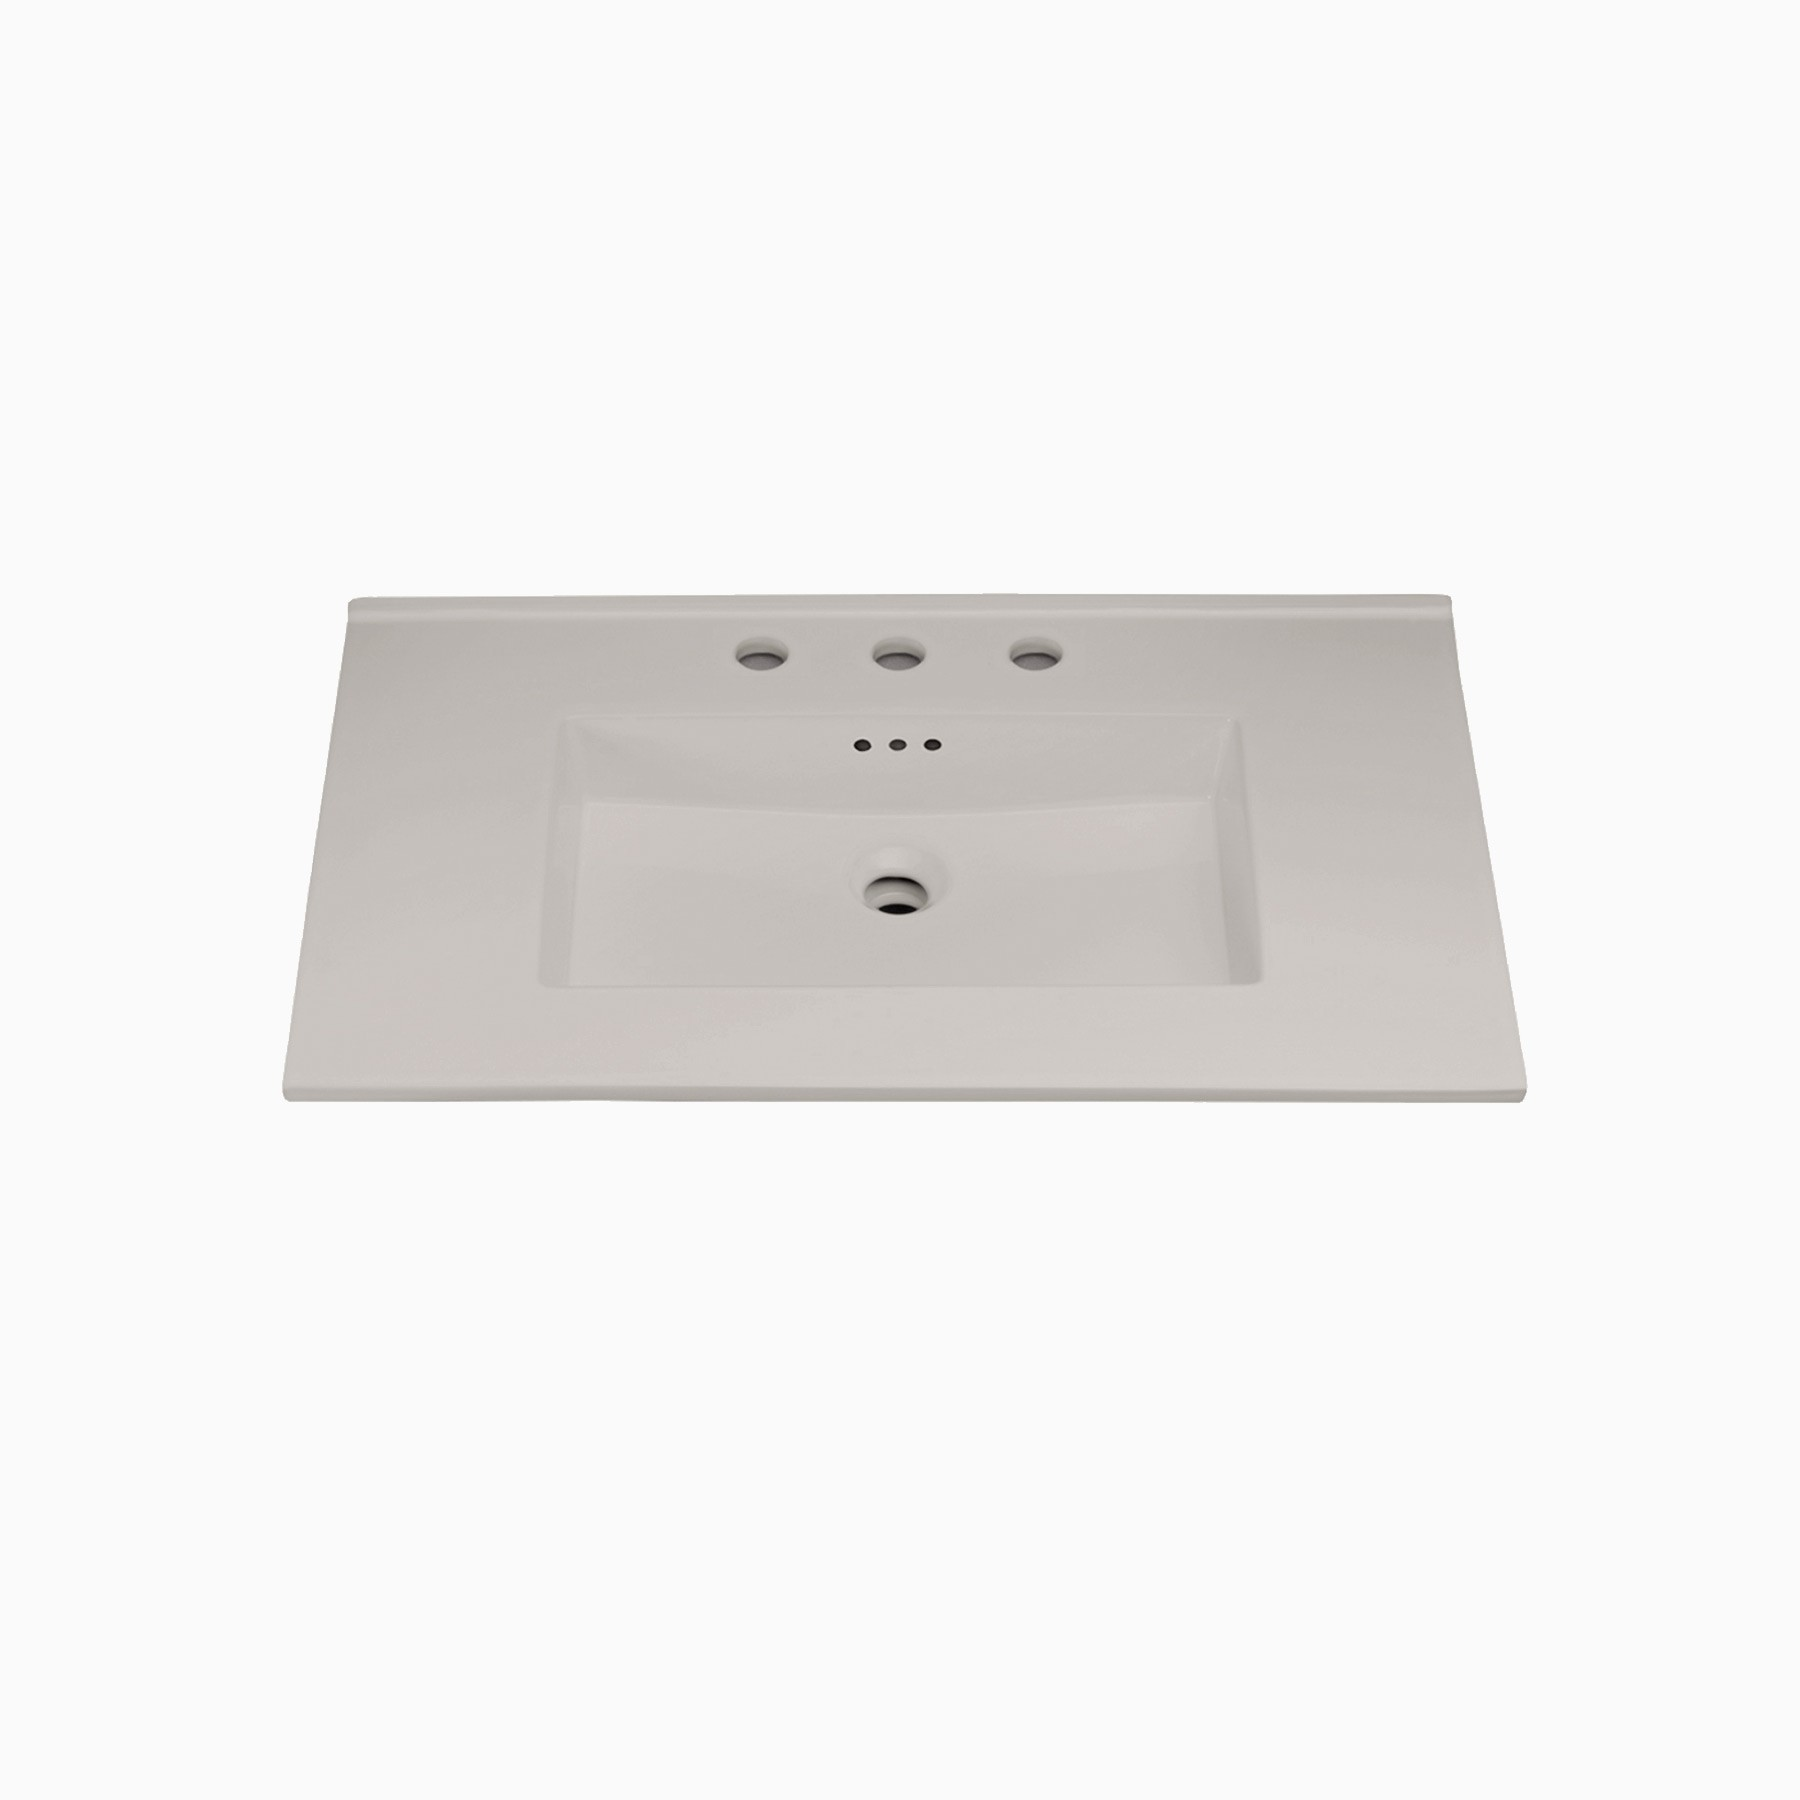 33 W X 20 D Marbella Ceramic Single Vanity Top With Integrated Sink